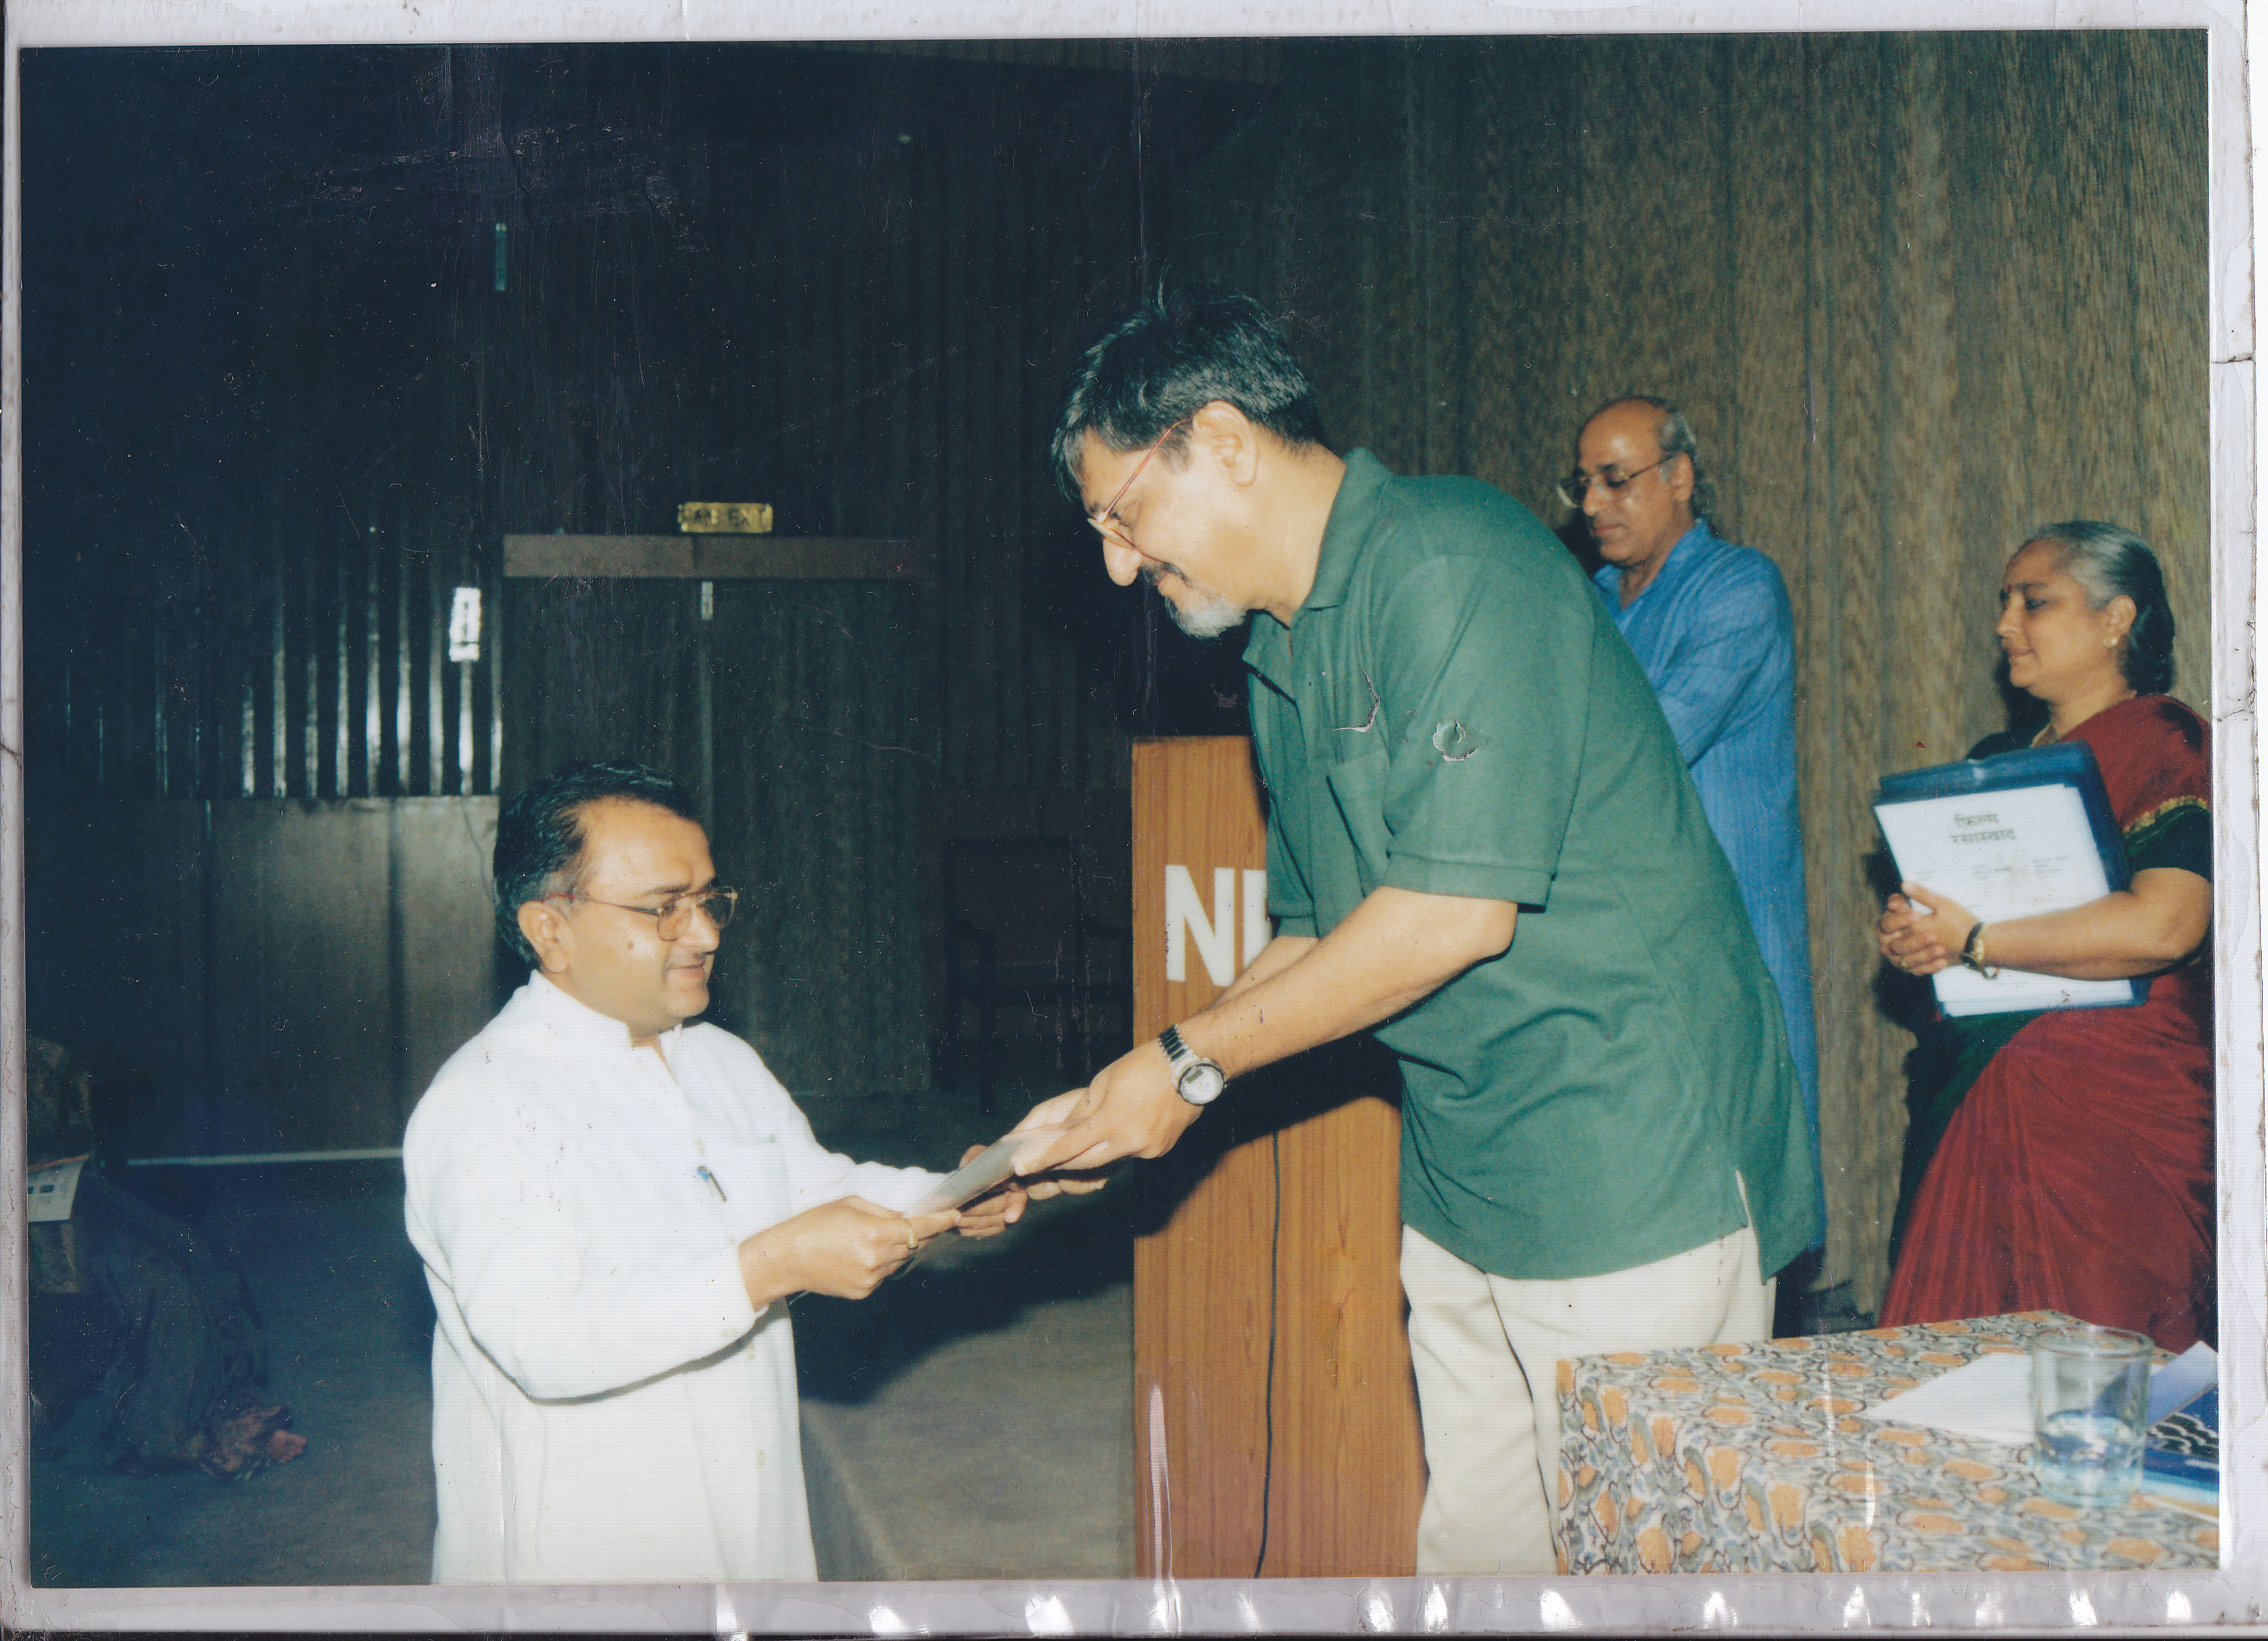 Receiving certificate from Amol Palekar